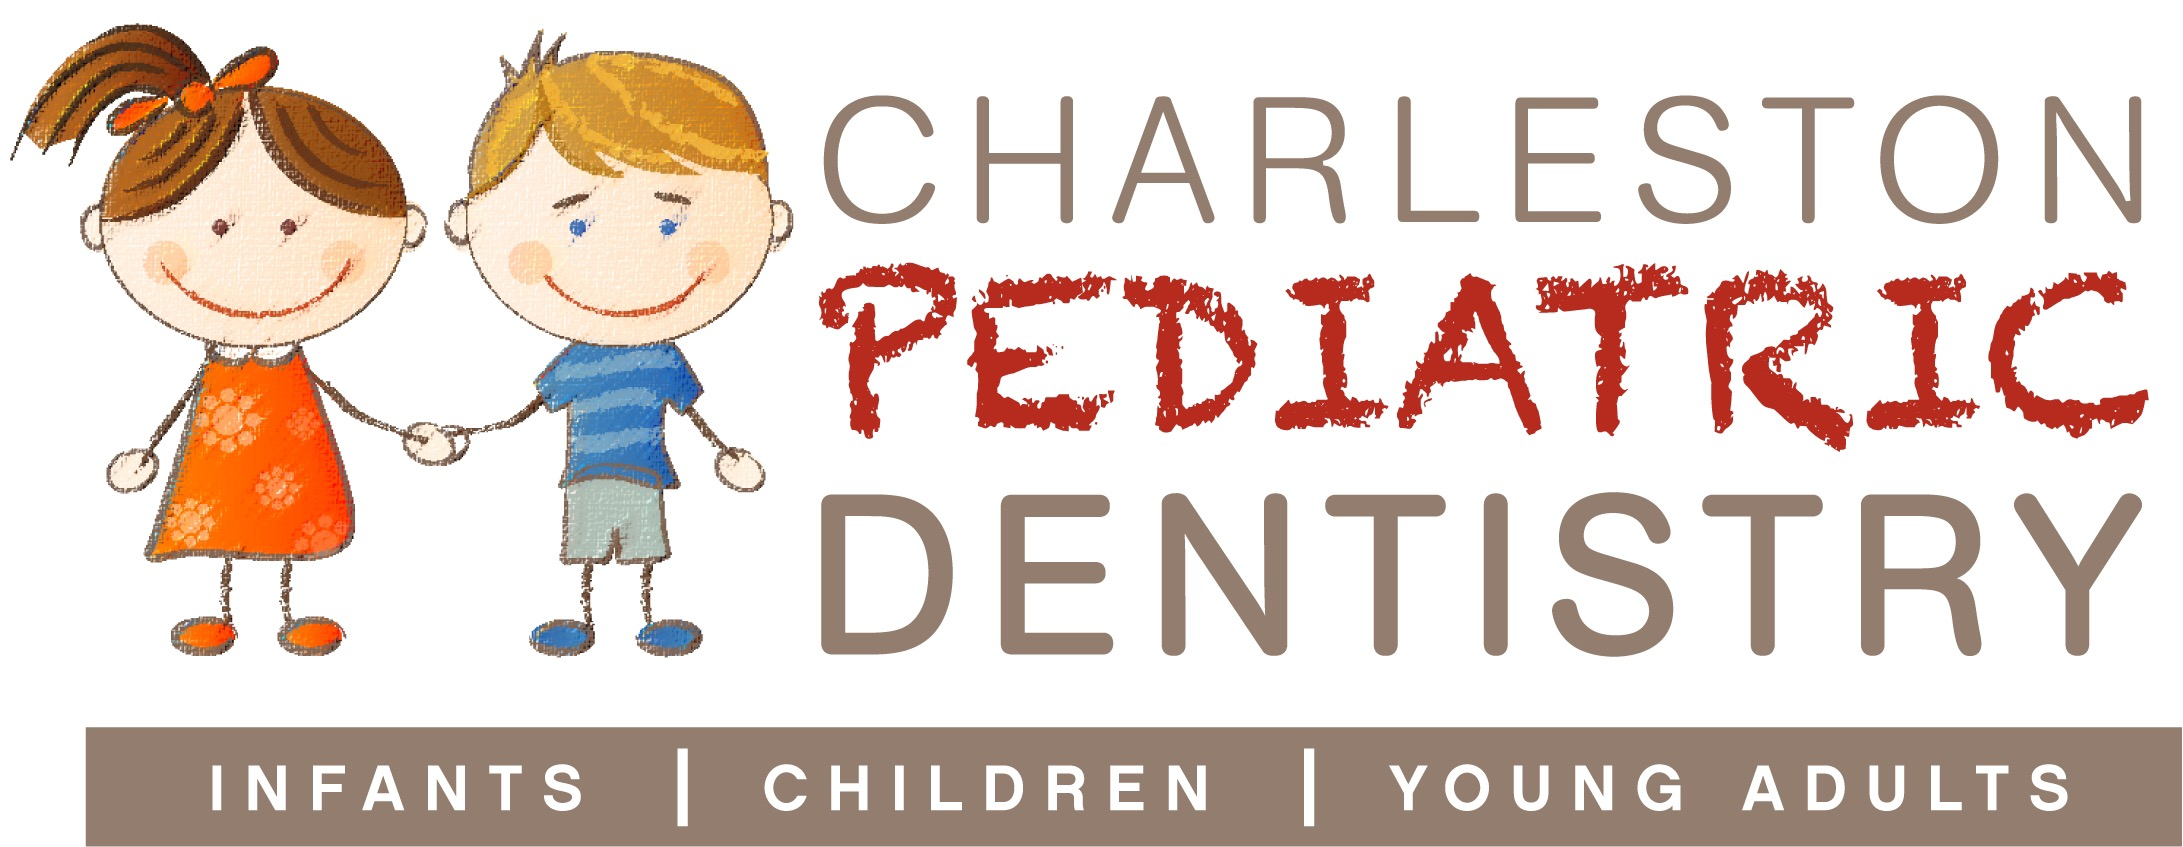 Charleston Pediatric Dentistry